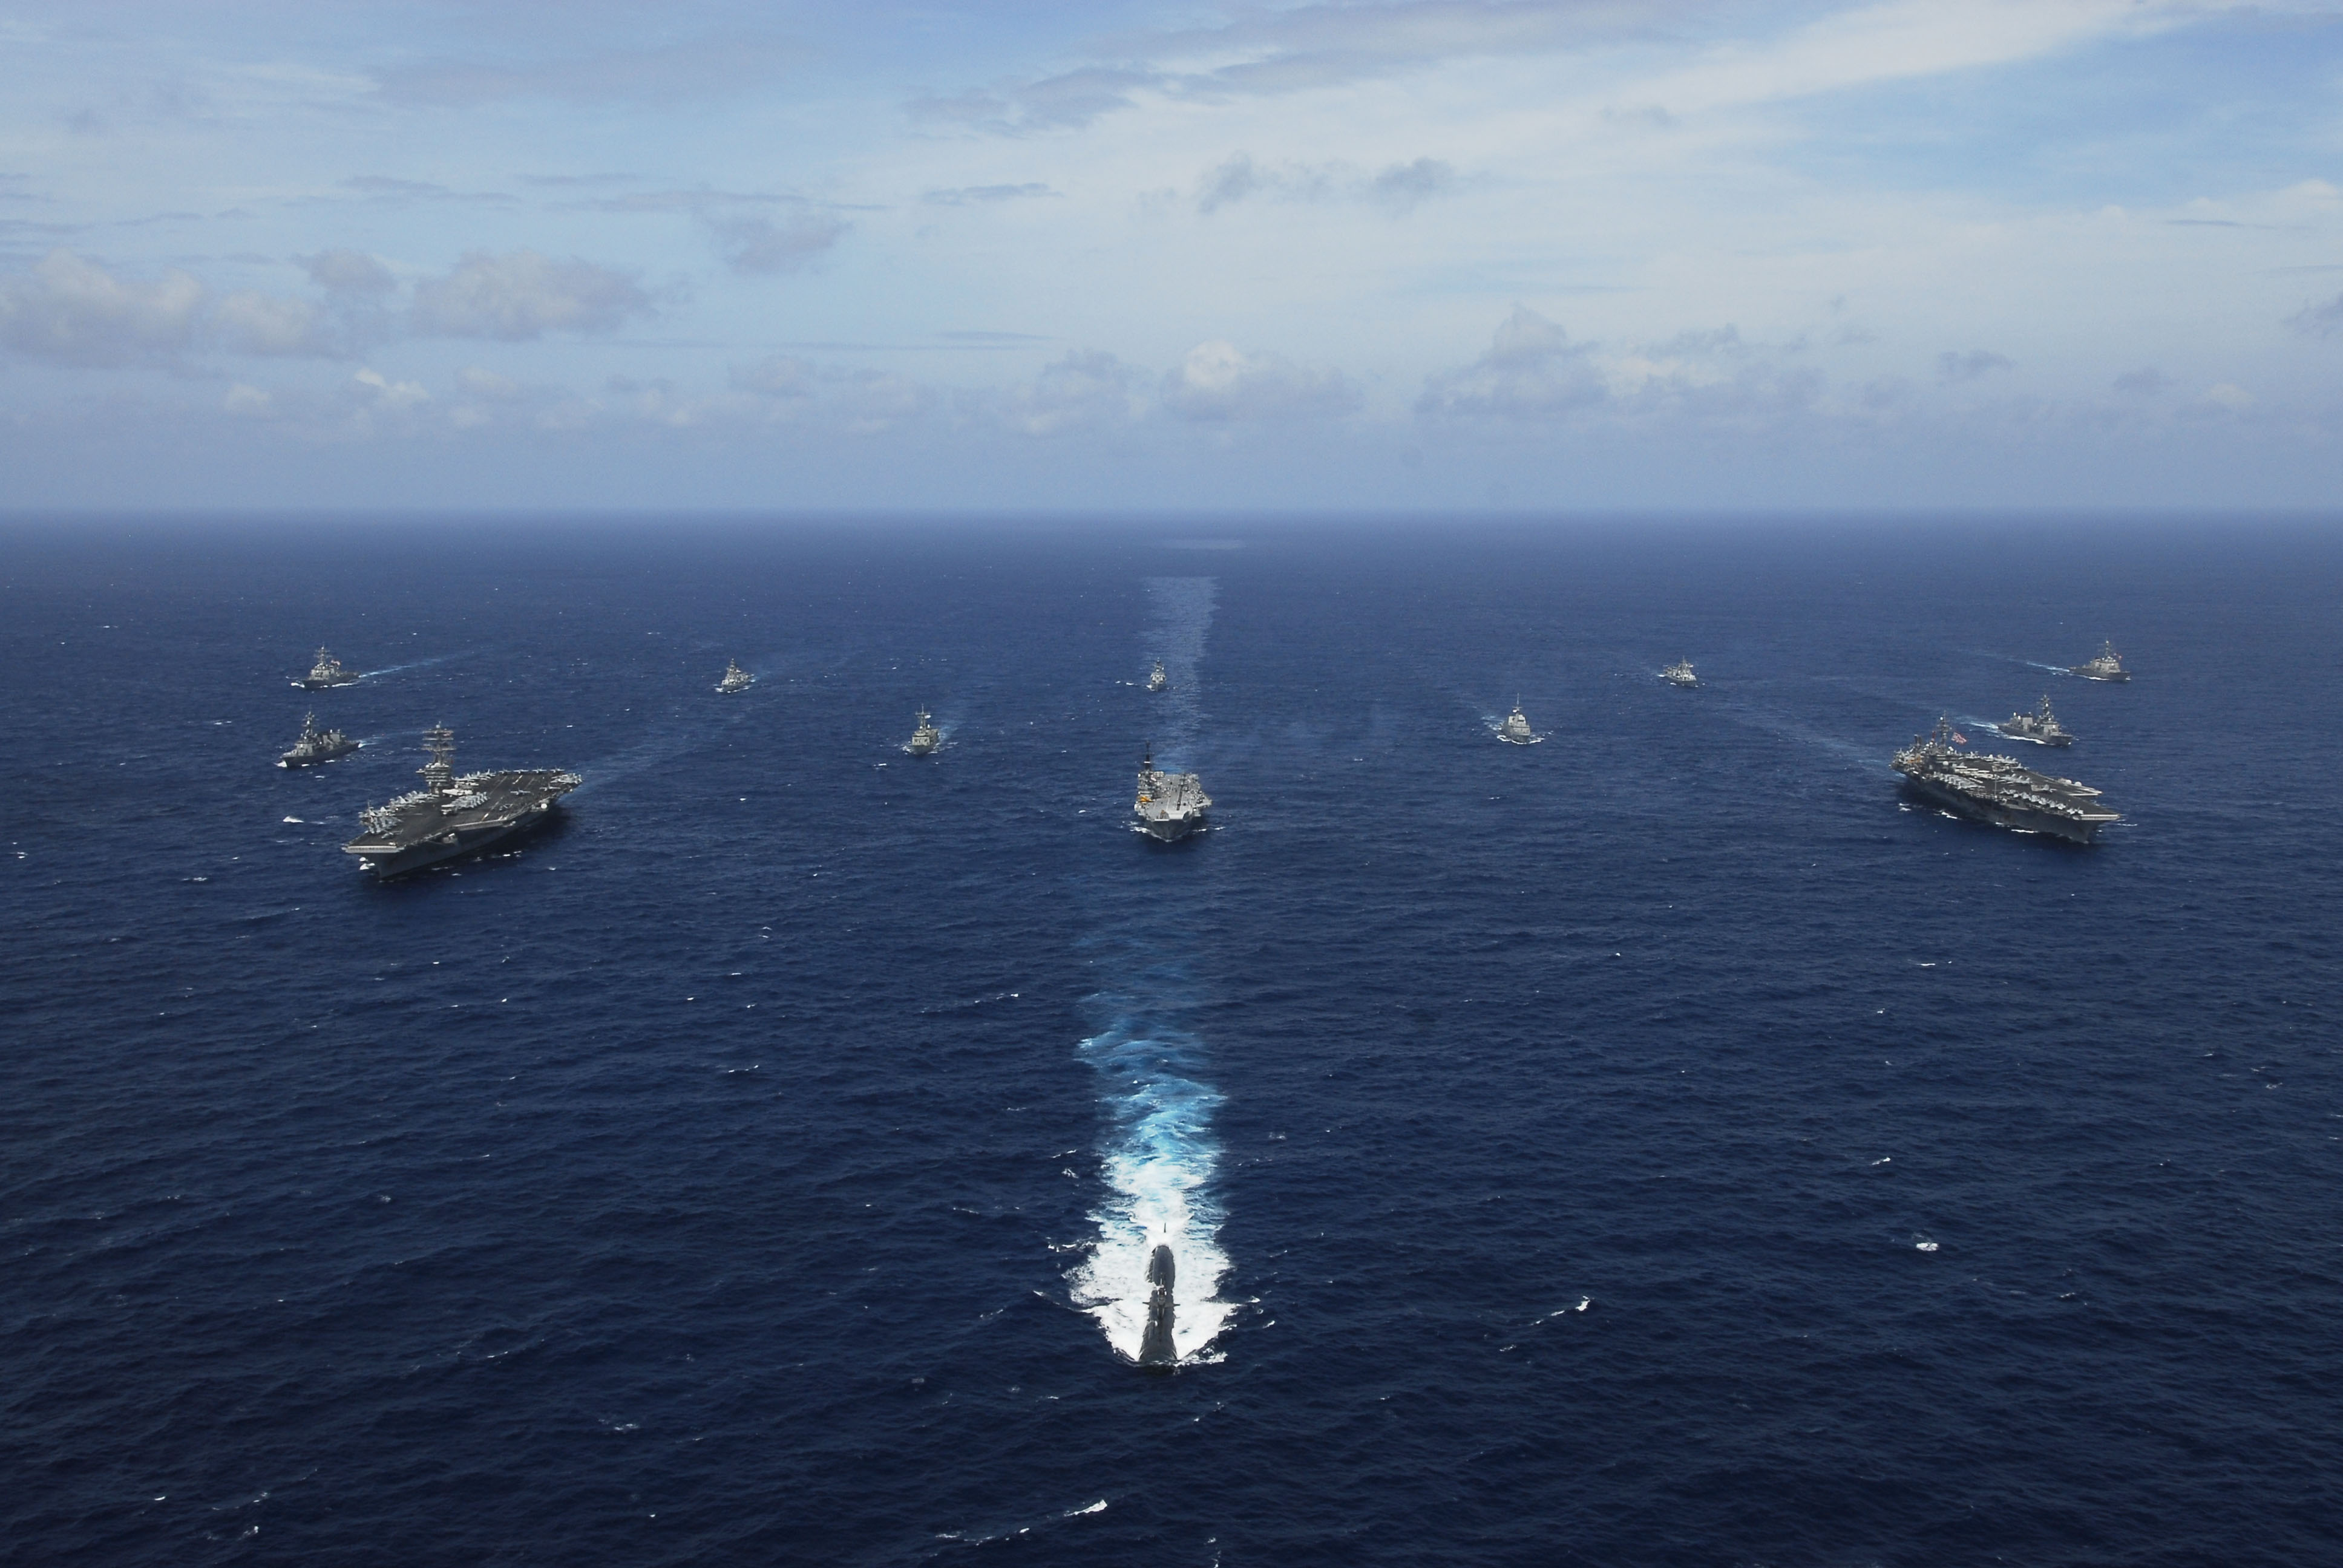 NSA Reform or Foreign Policy Signaling? Maritime Provisions in Title VIII of the USA Freedom Act